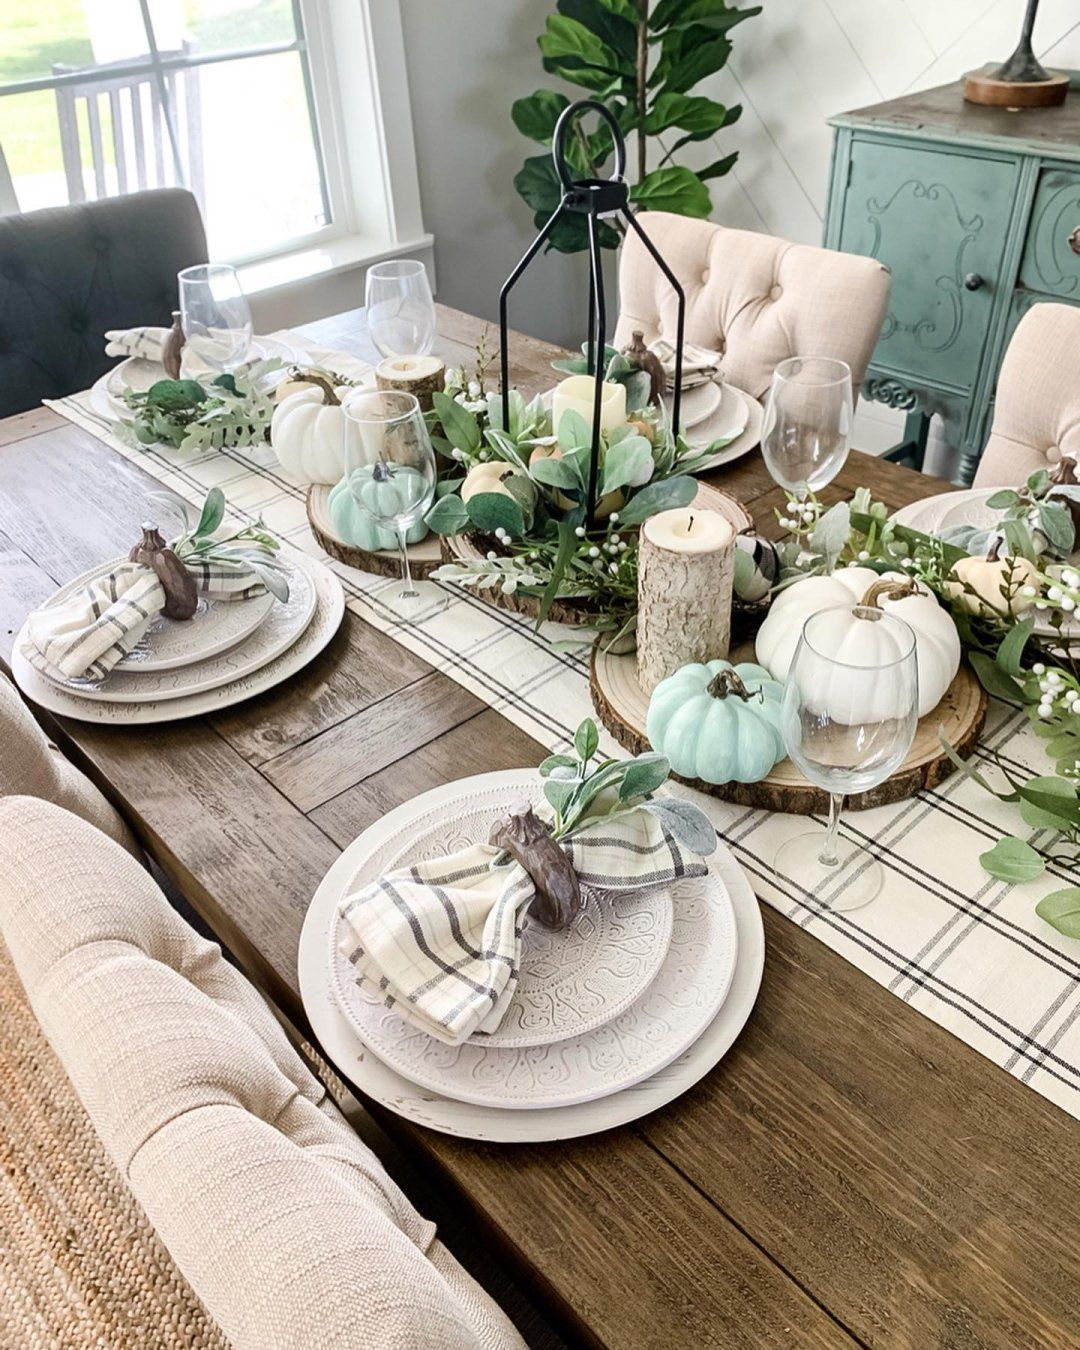 Ideas for Setting the Table from the Kirkland's Insiders